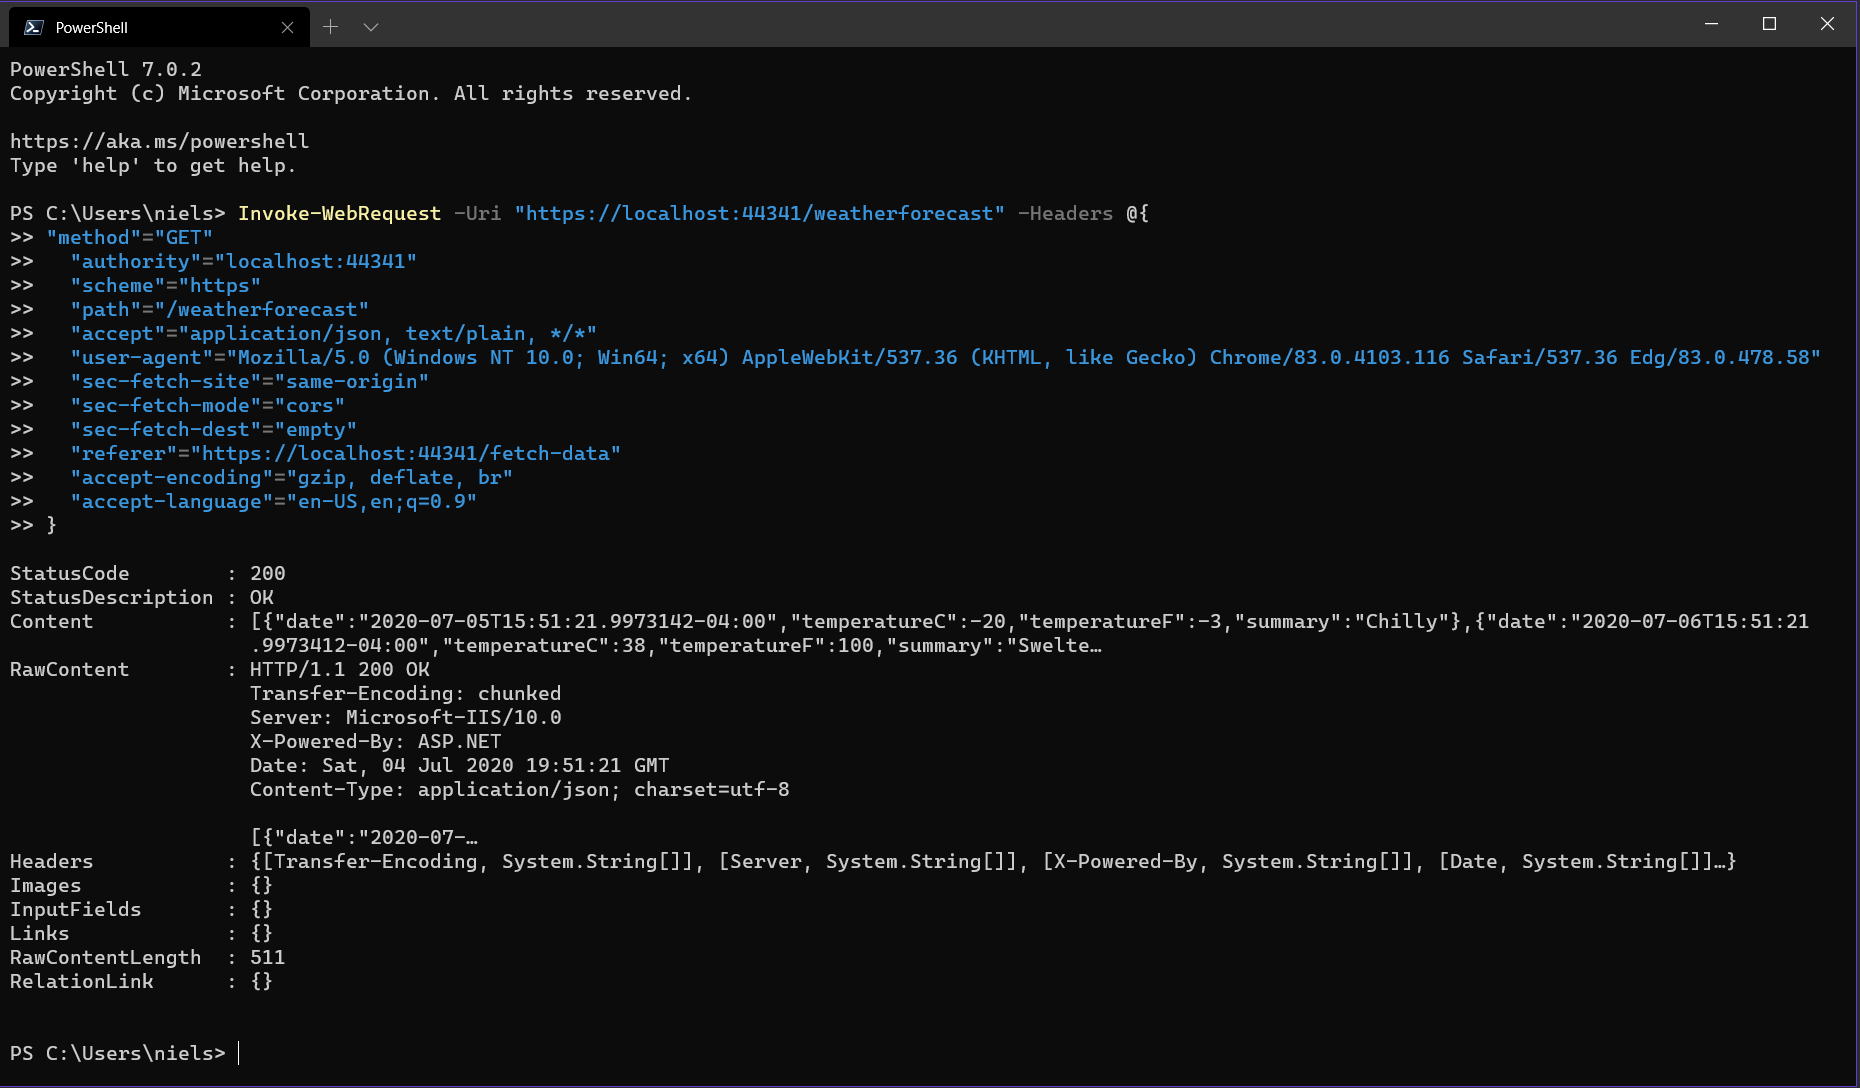 Screenshot of PowerShell script execution of the HTTP Request in a PowerShell window